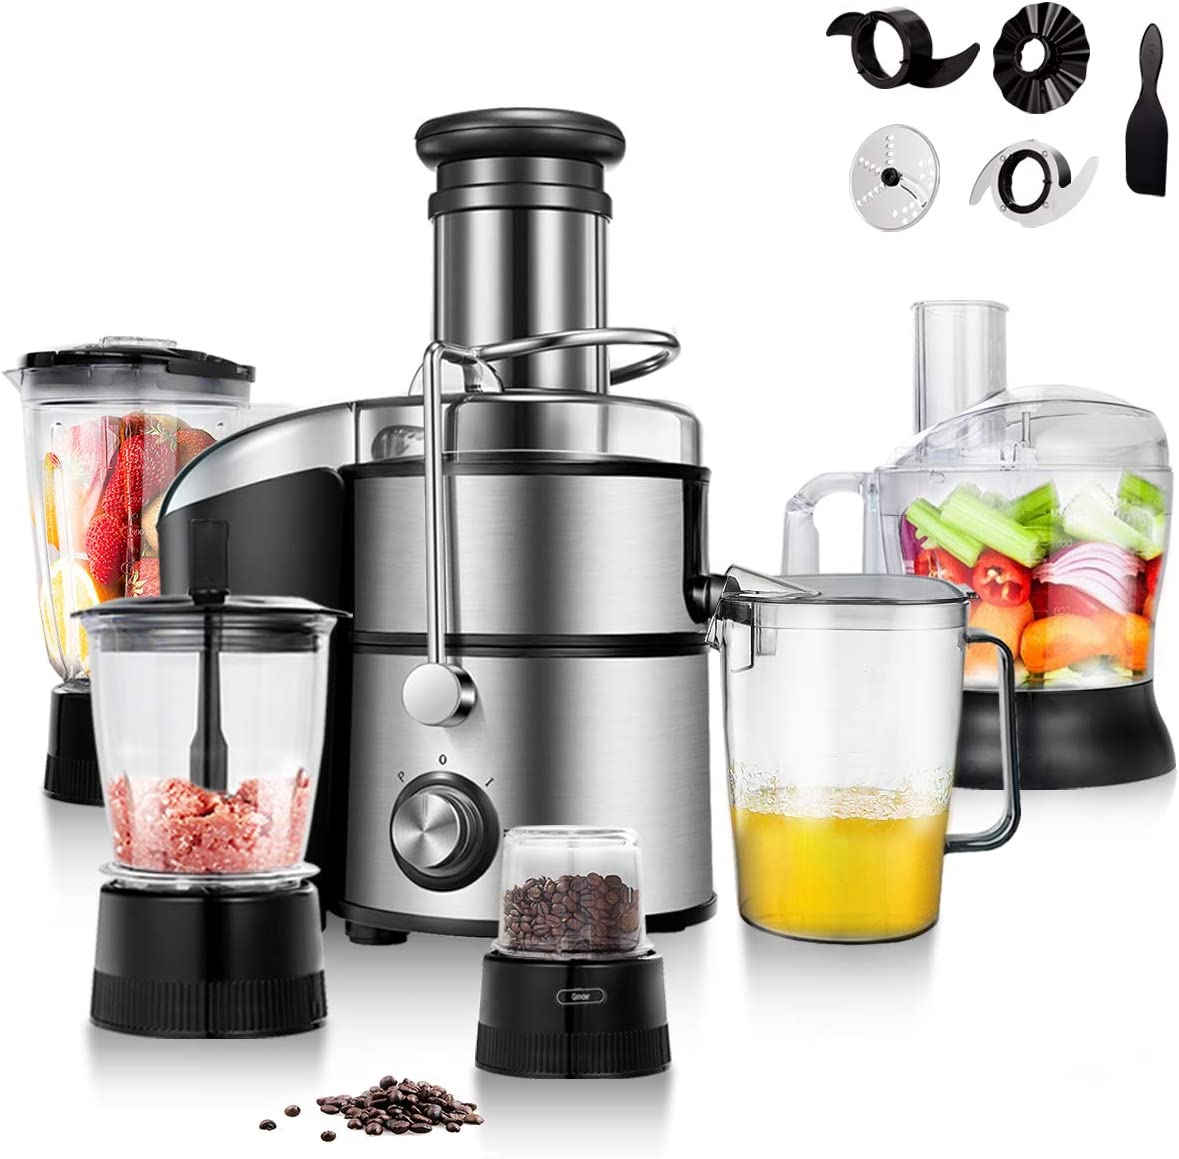 Best Juicer Blender Combo 2021 – Reviews & Buying Guide